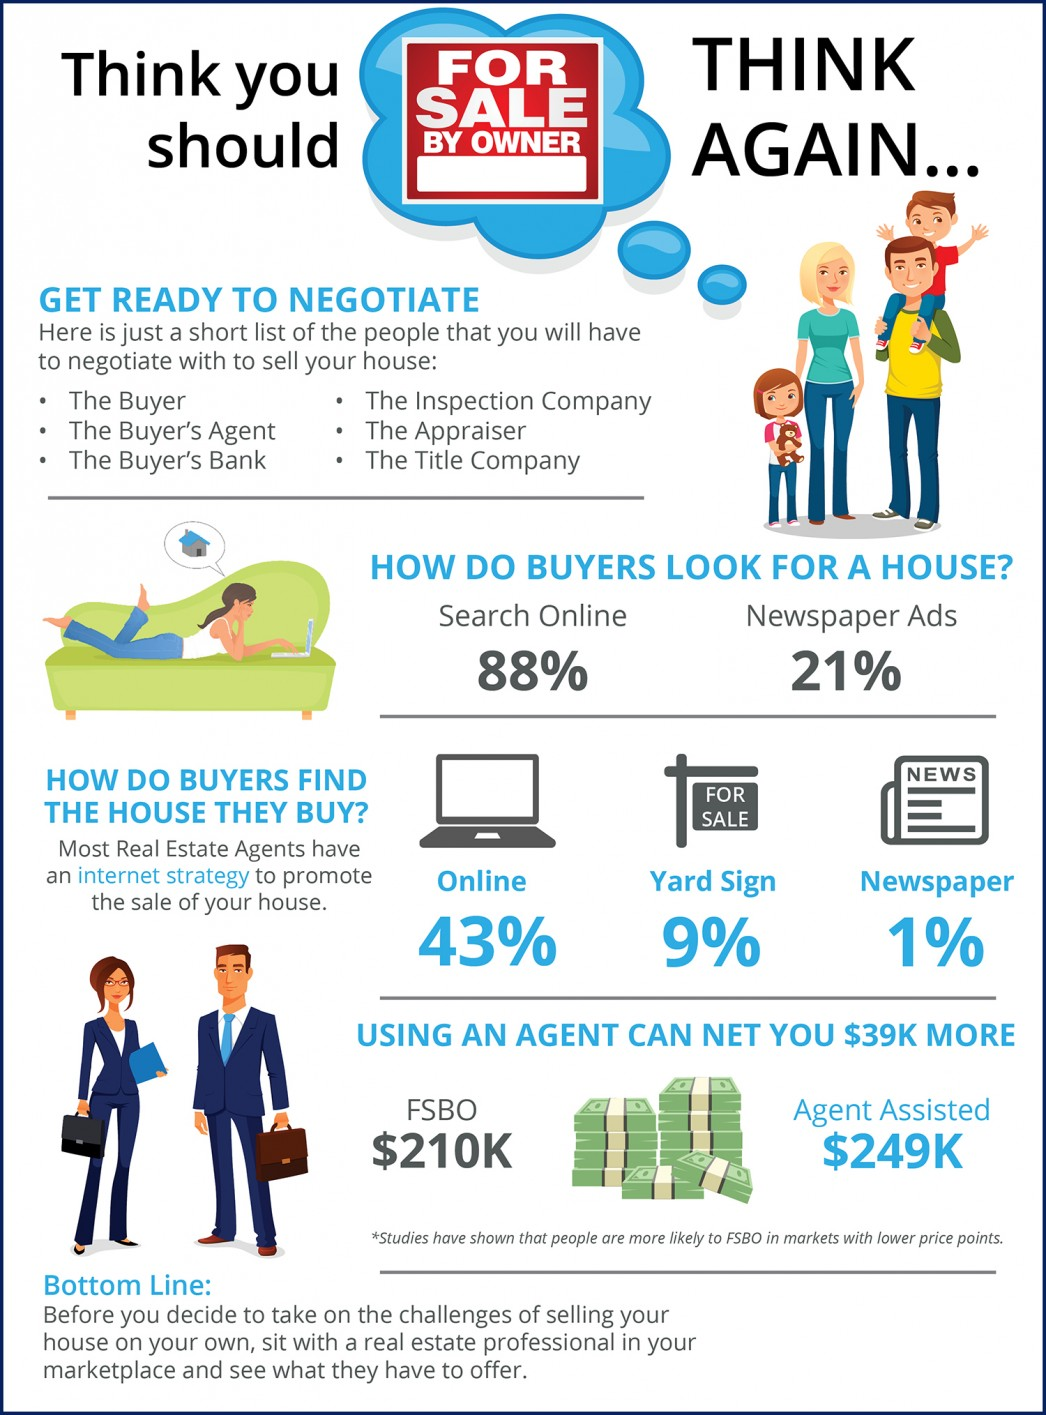 Thinking You Should FSBO? Think Again [INFOGRAPHIC] | MyKCM